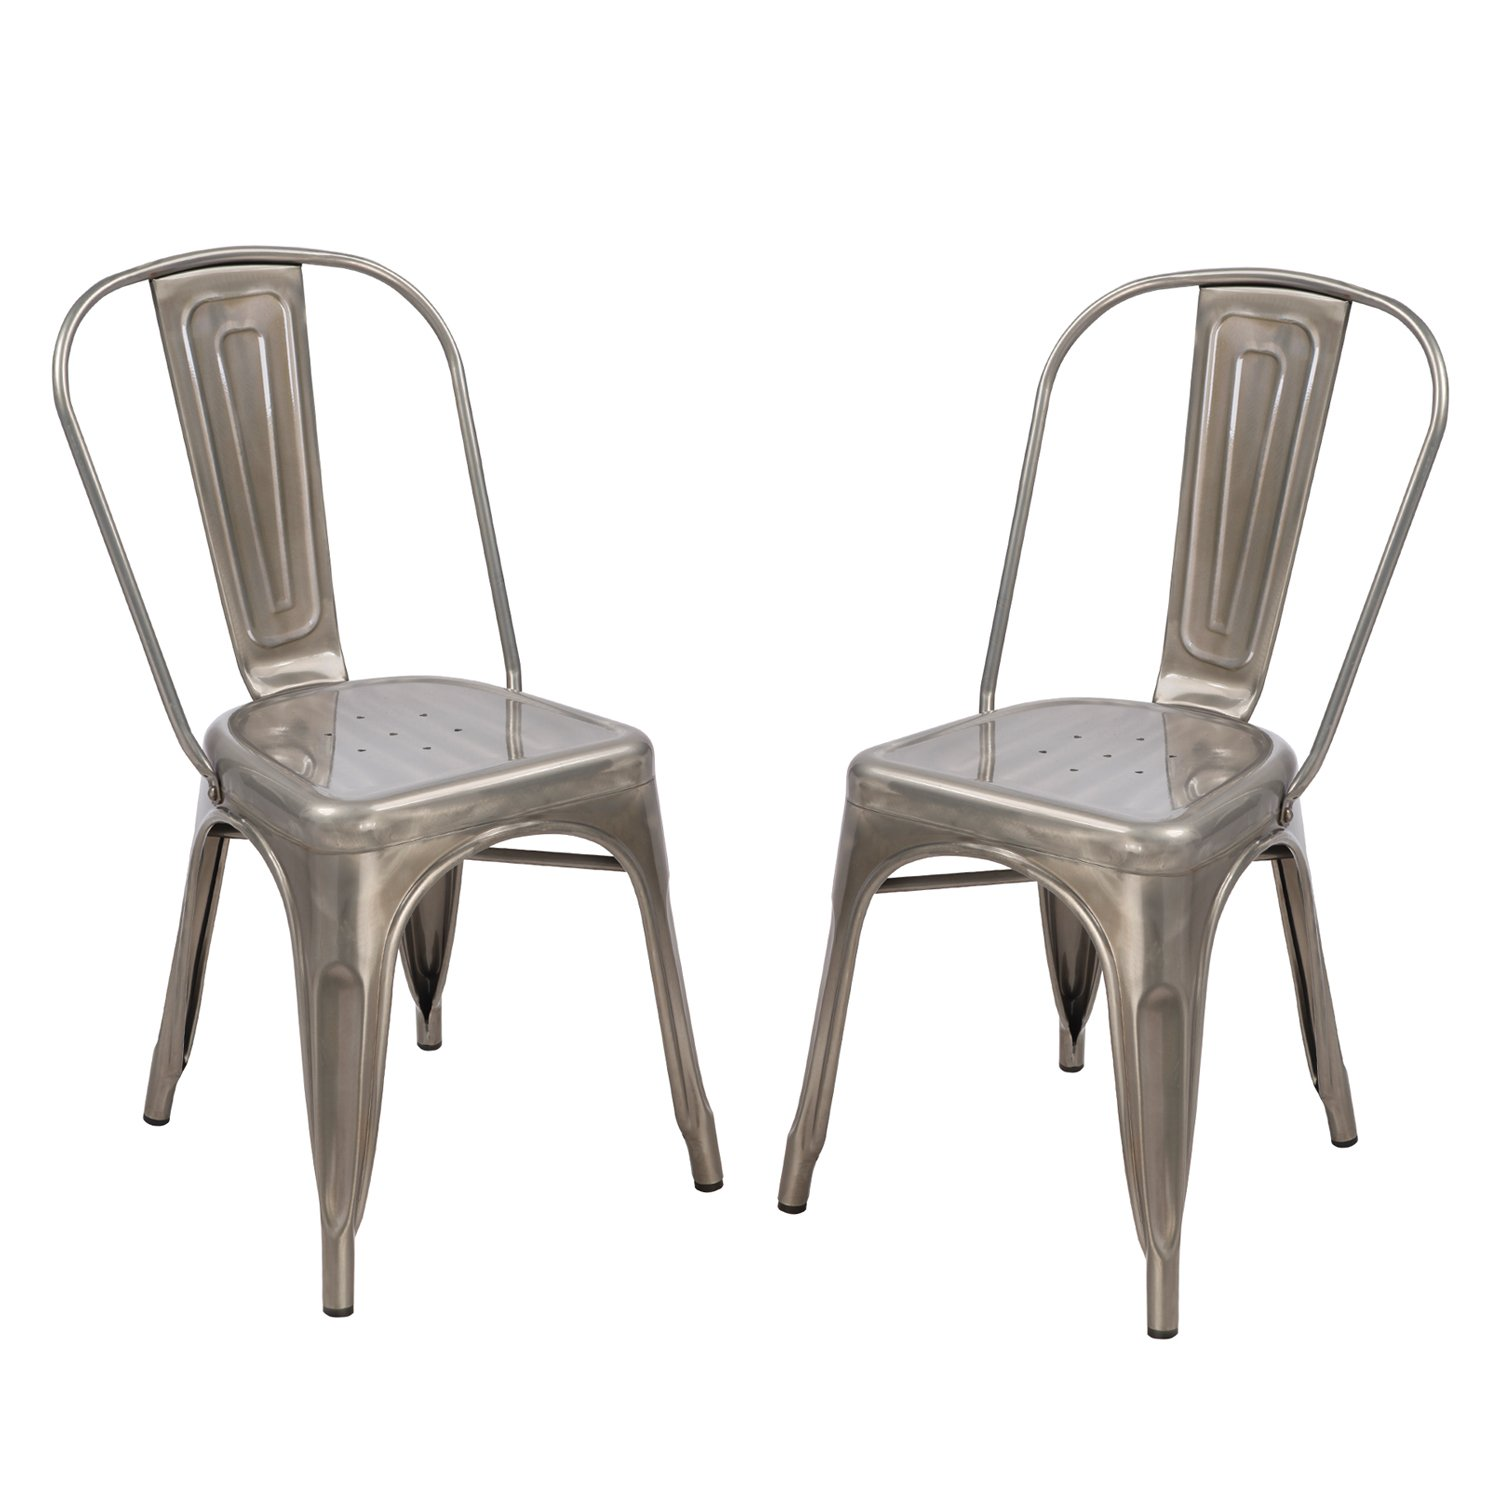 Cafe Chair No18 Bentwood Cafe Chair Thonet Michael Thonet Custom – Cafe Style Tables and Chairs